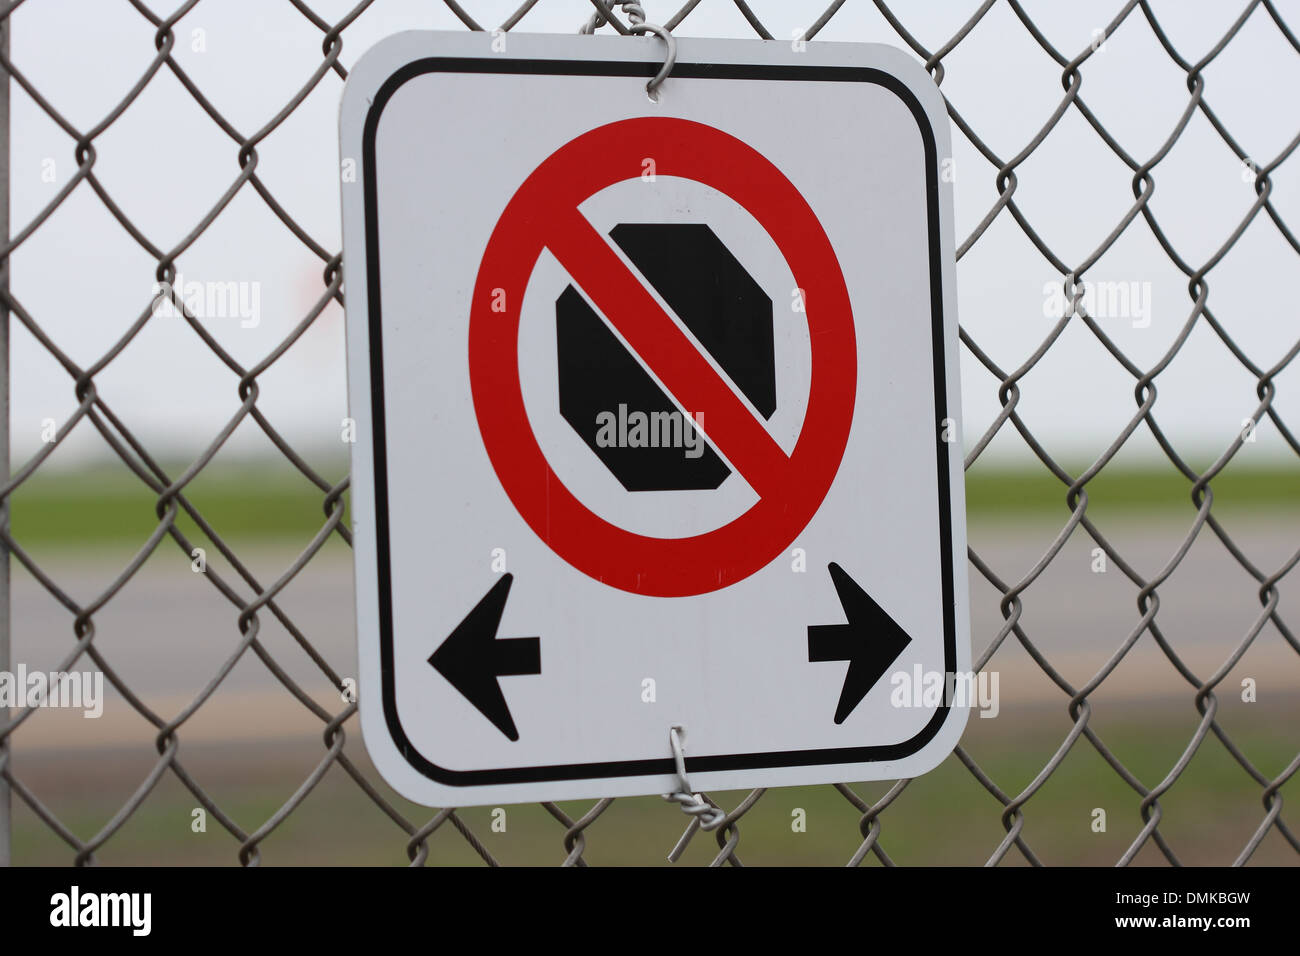 No Stopping road sign on the chicken wire fence, June 26, 2013 - Stock Image